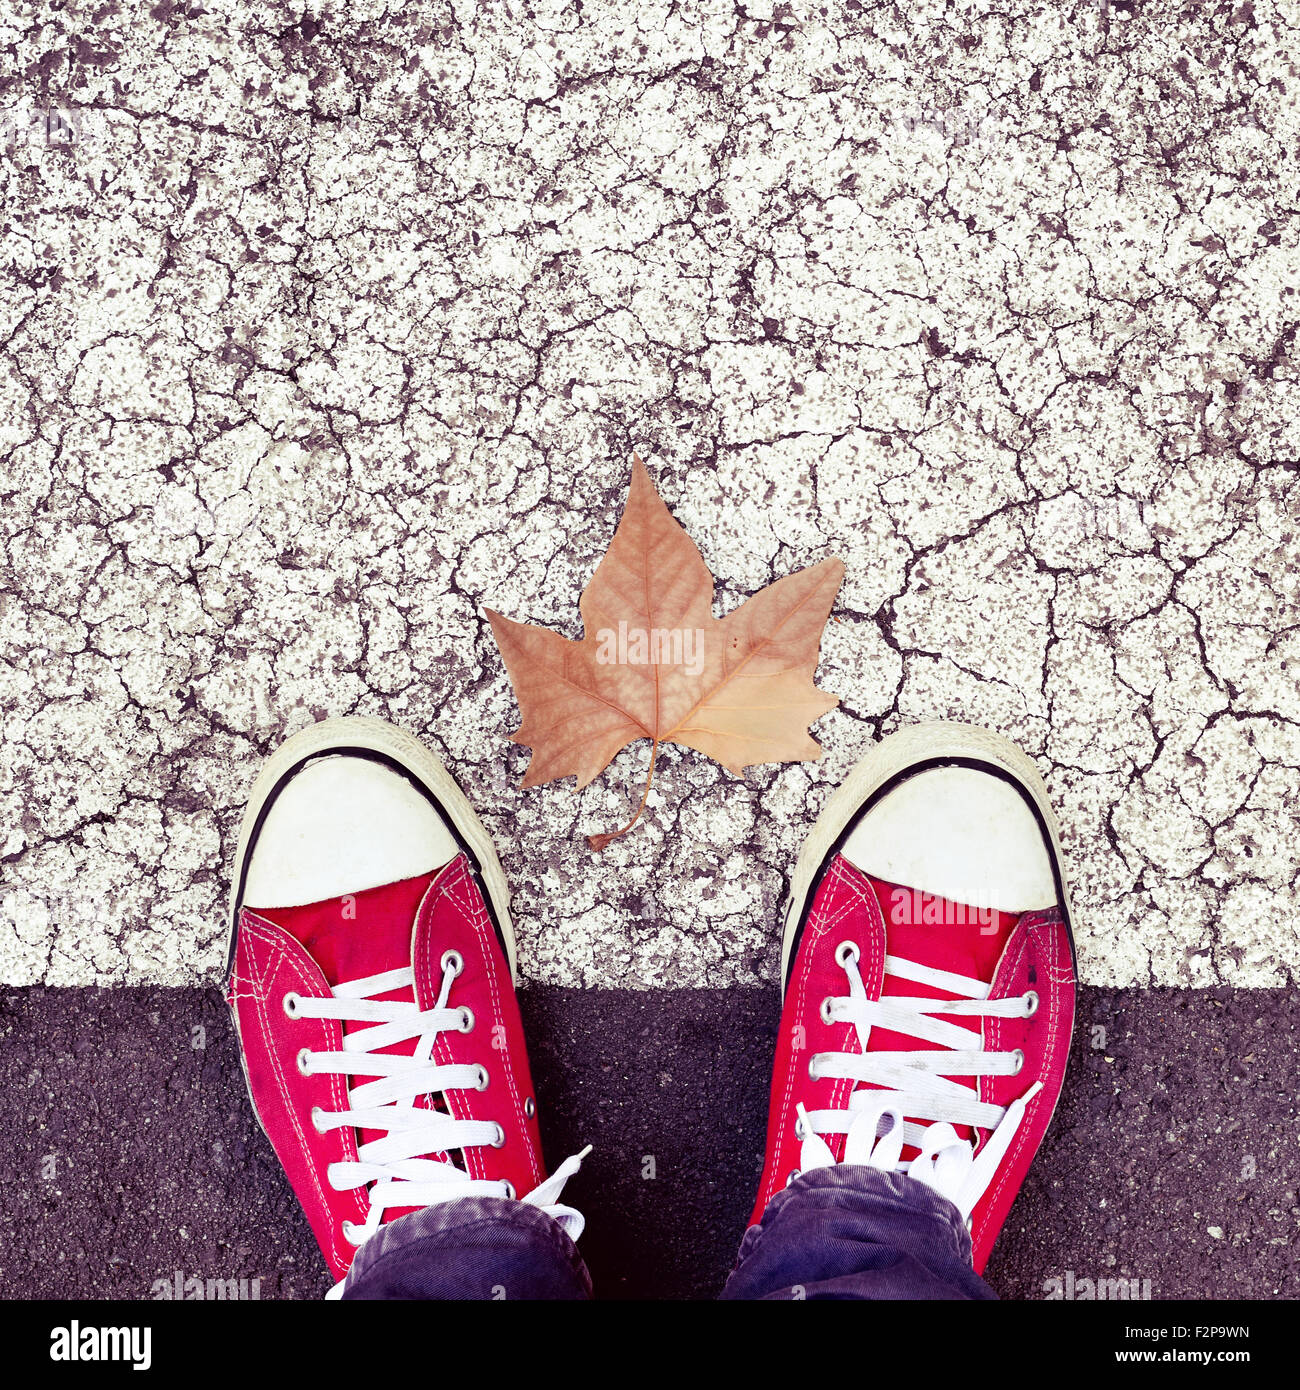 high-angle shot of a dry leaf and the feet of a man wearing red sneakers on the asphalt - Stock Image